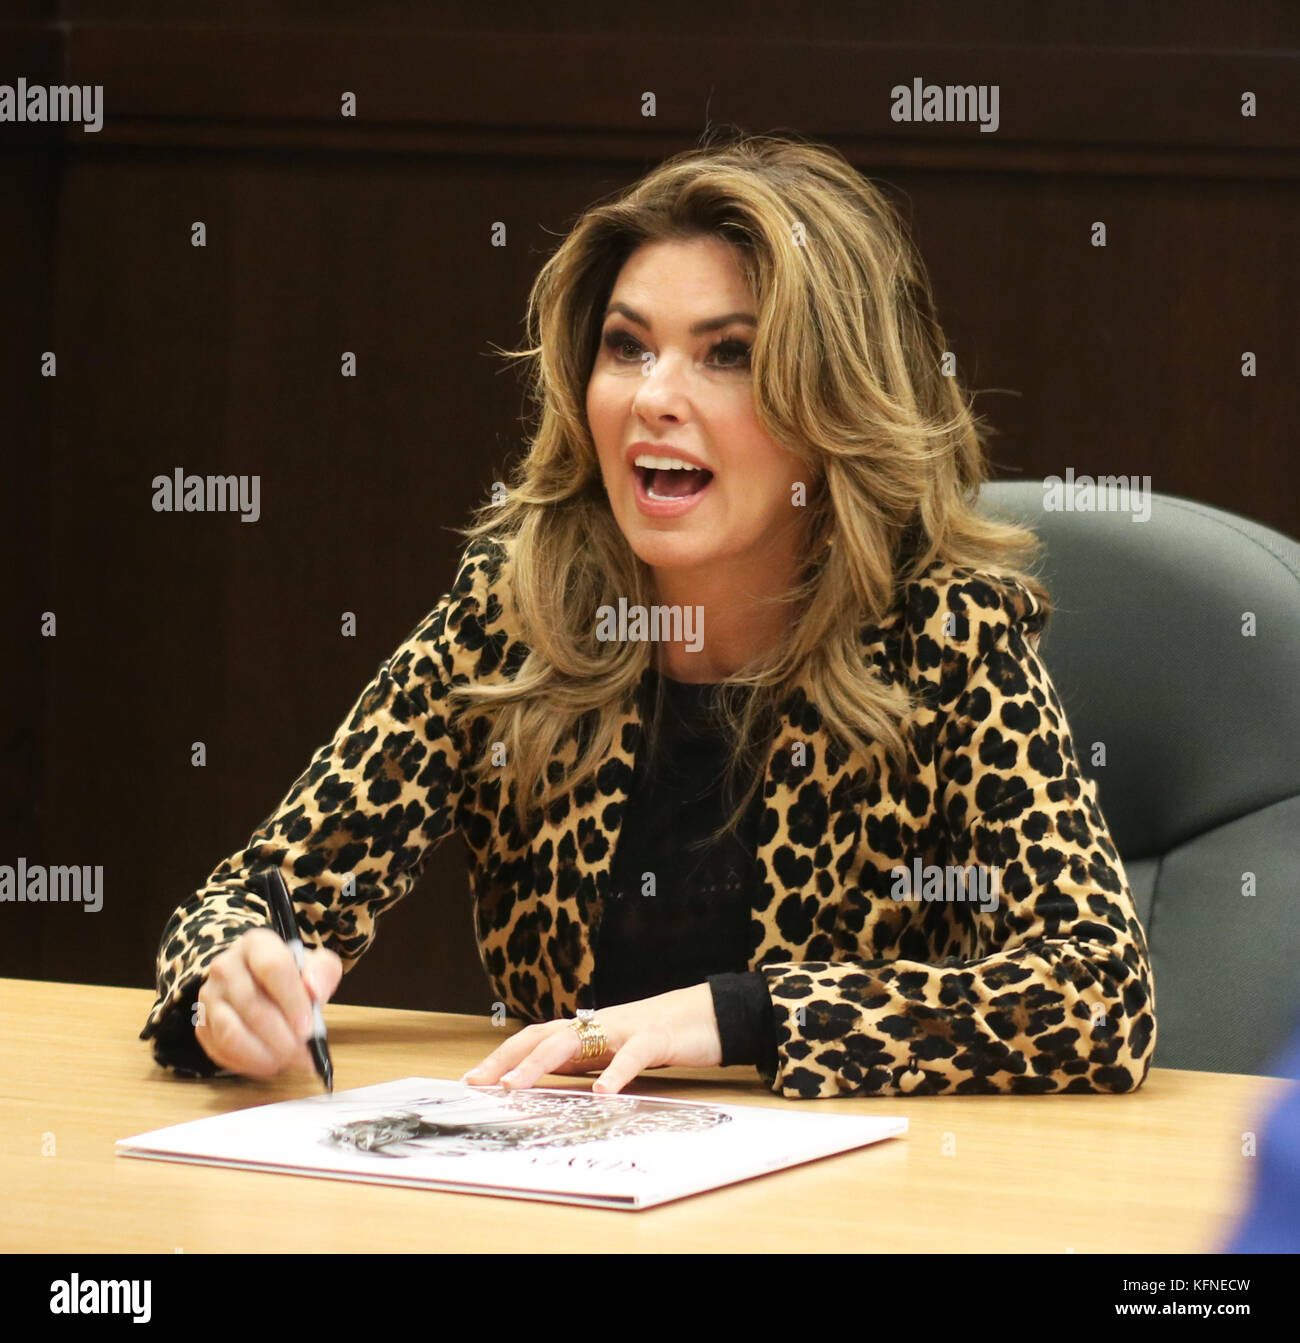 Shania Twain Attends Her Album Signing For Now At Barnes Noble